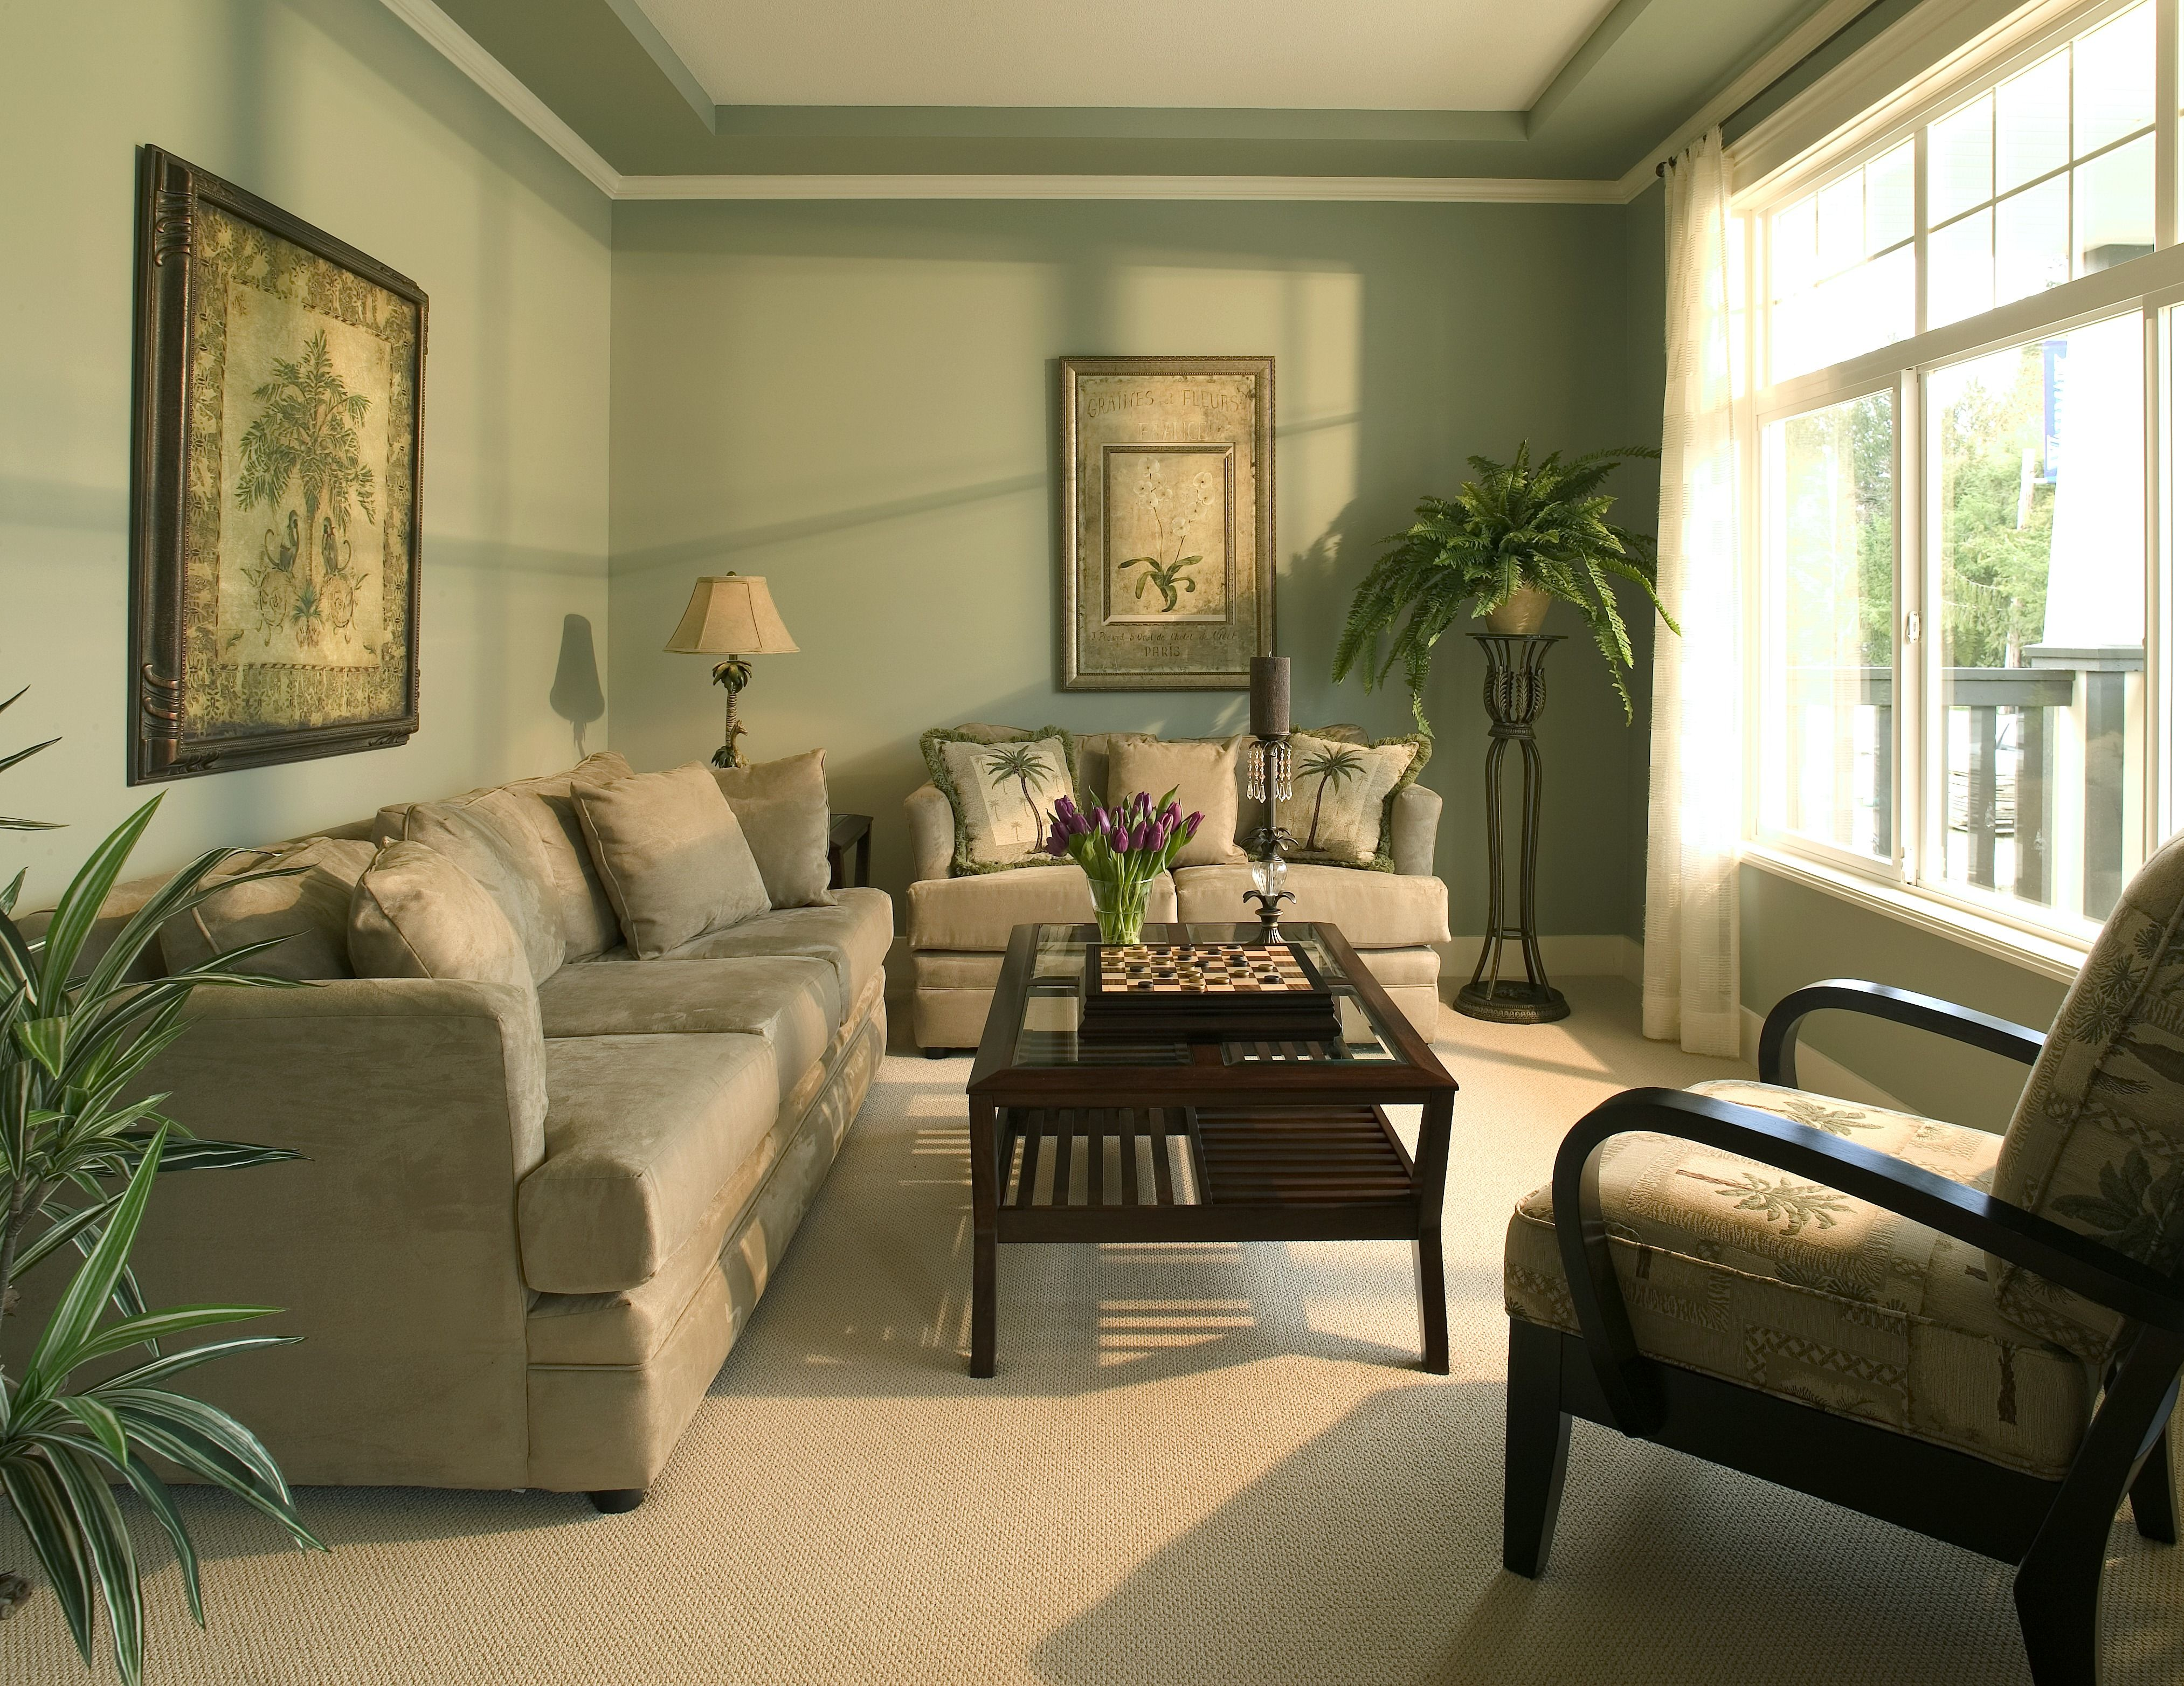 13 Quick And Easy Interior Painting Tips With Images Best Living Room Design Colonial Living Room Living Room Photos